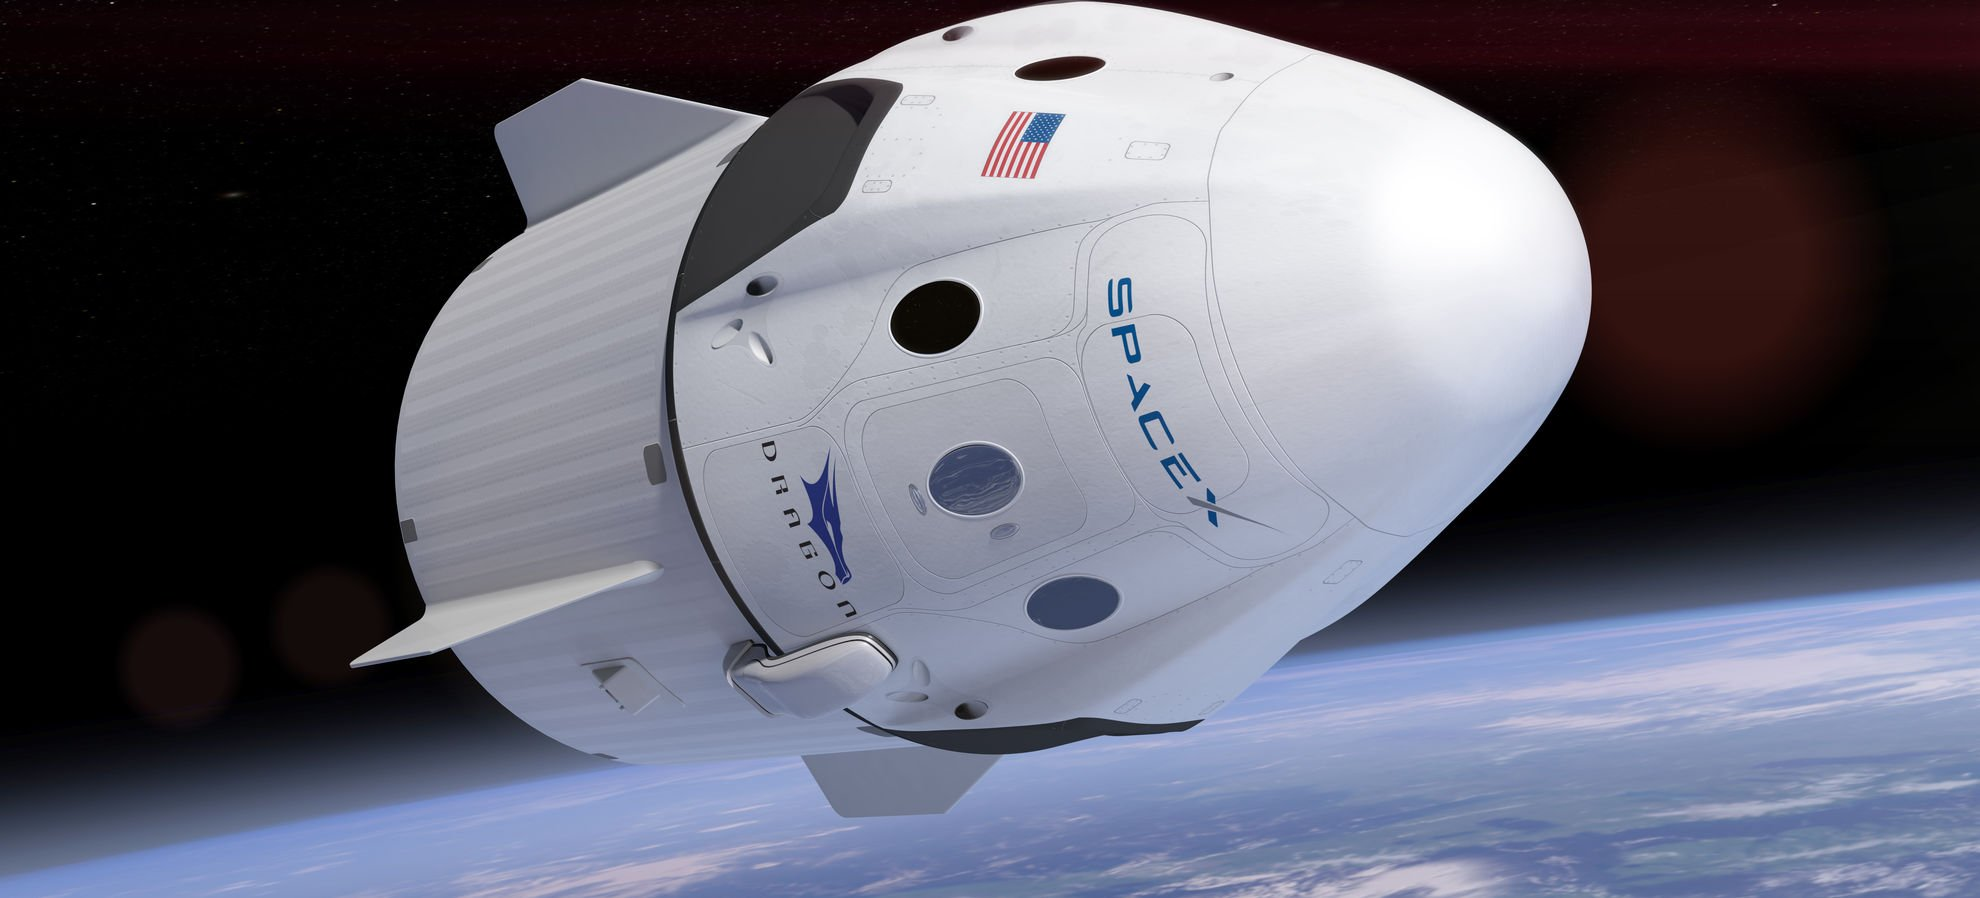 spacex, spacex starsjip, spacex big falcon rocket, elon musk, elon musk spacex